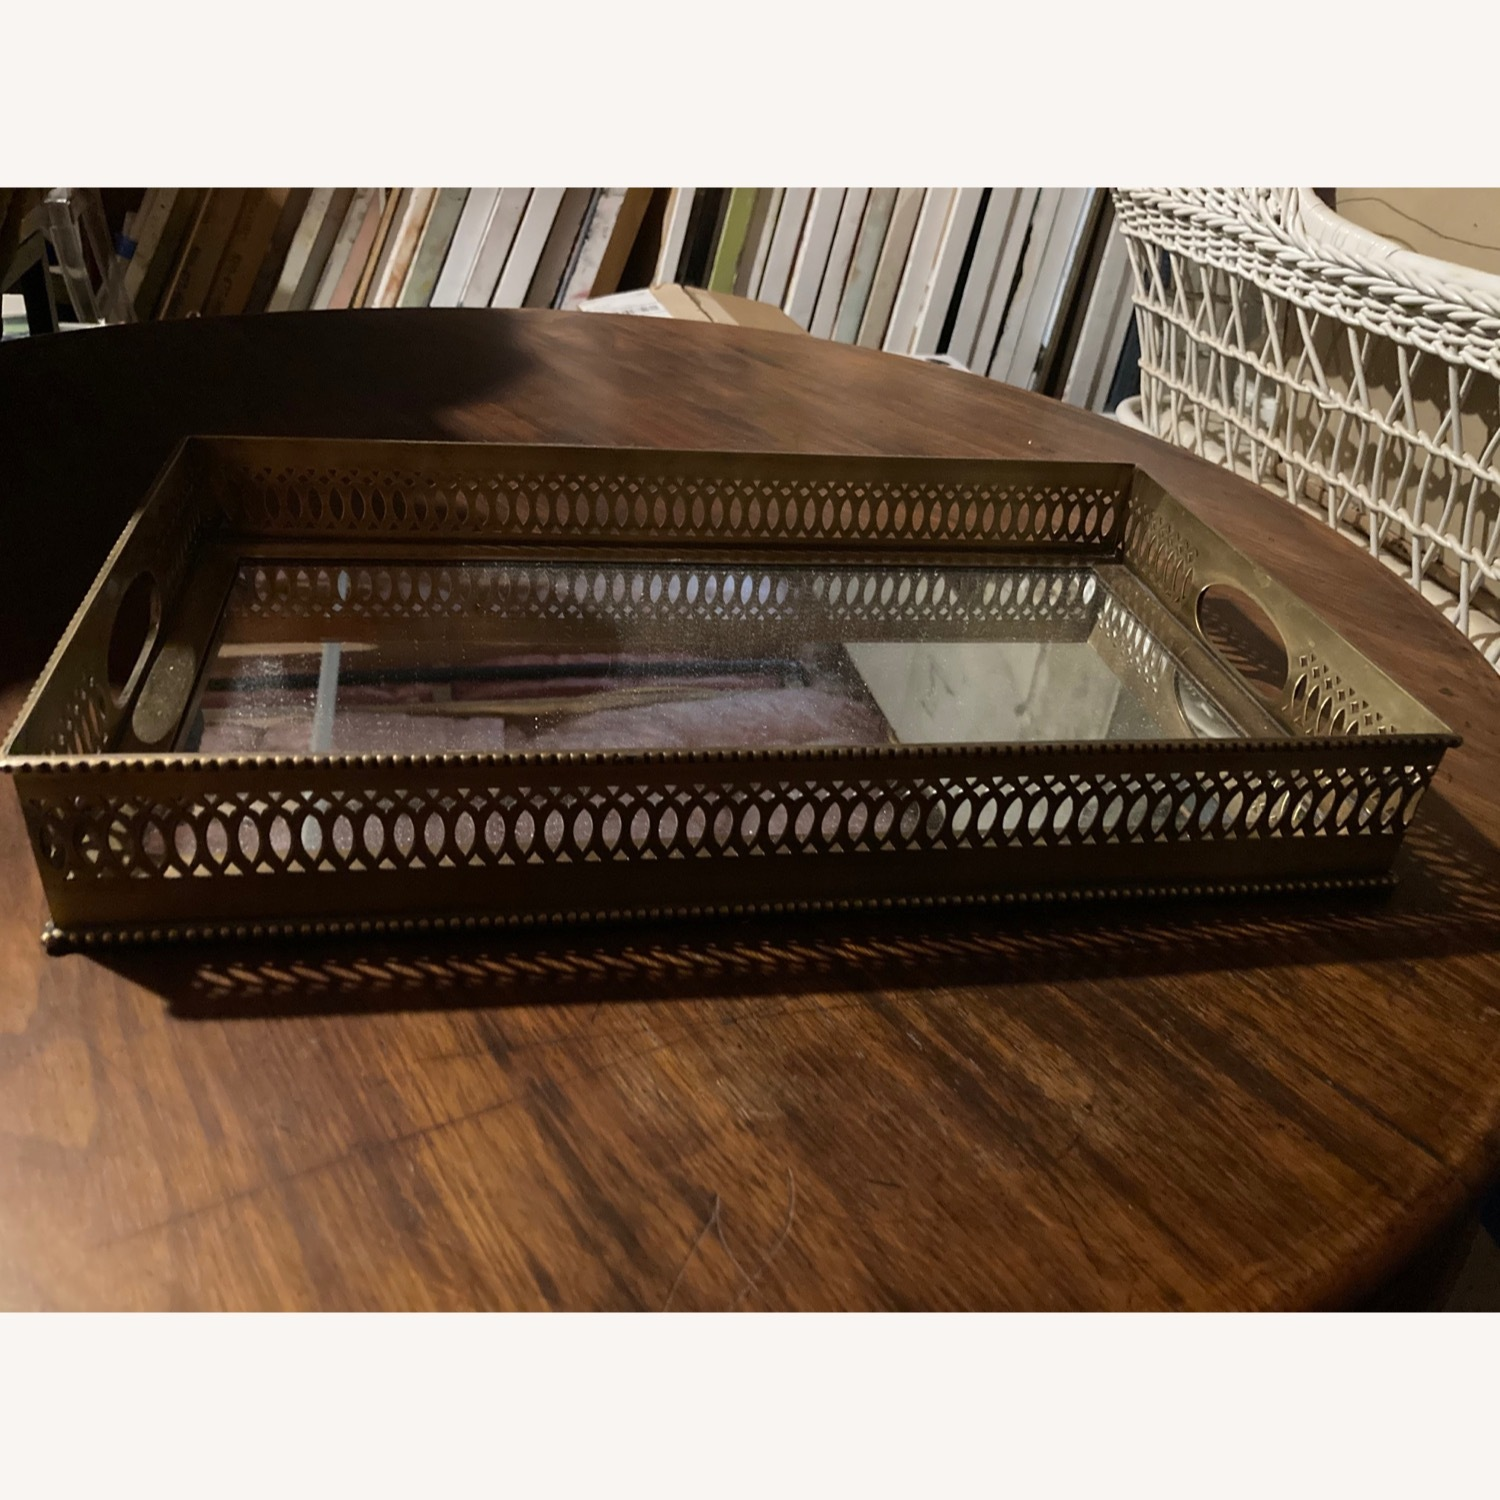 Ethan Allen Traditional Brass Tray - image-1